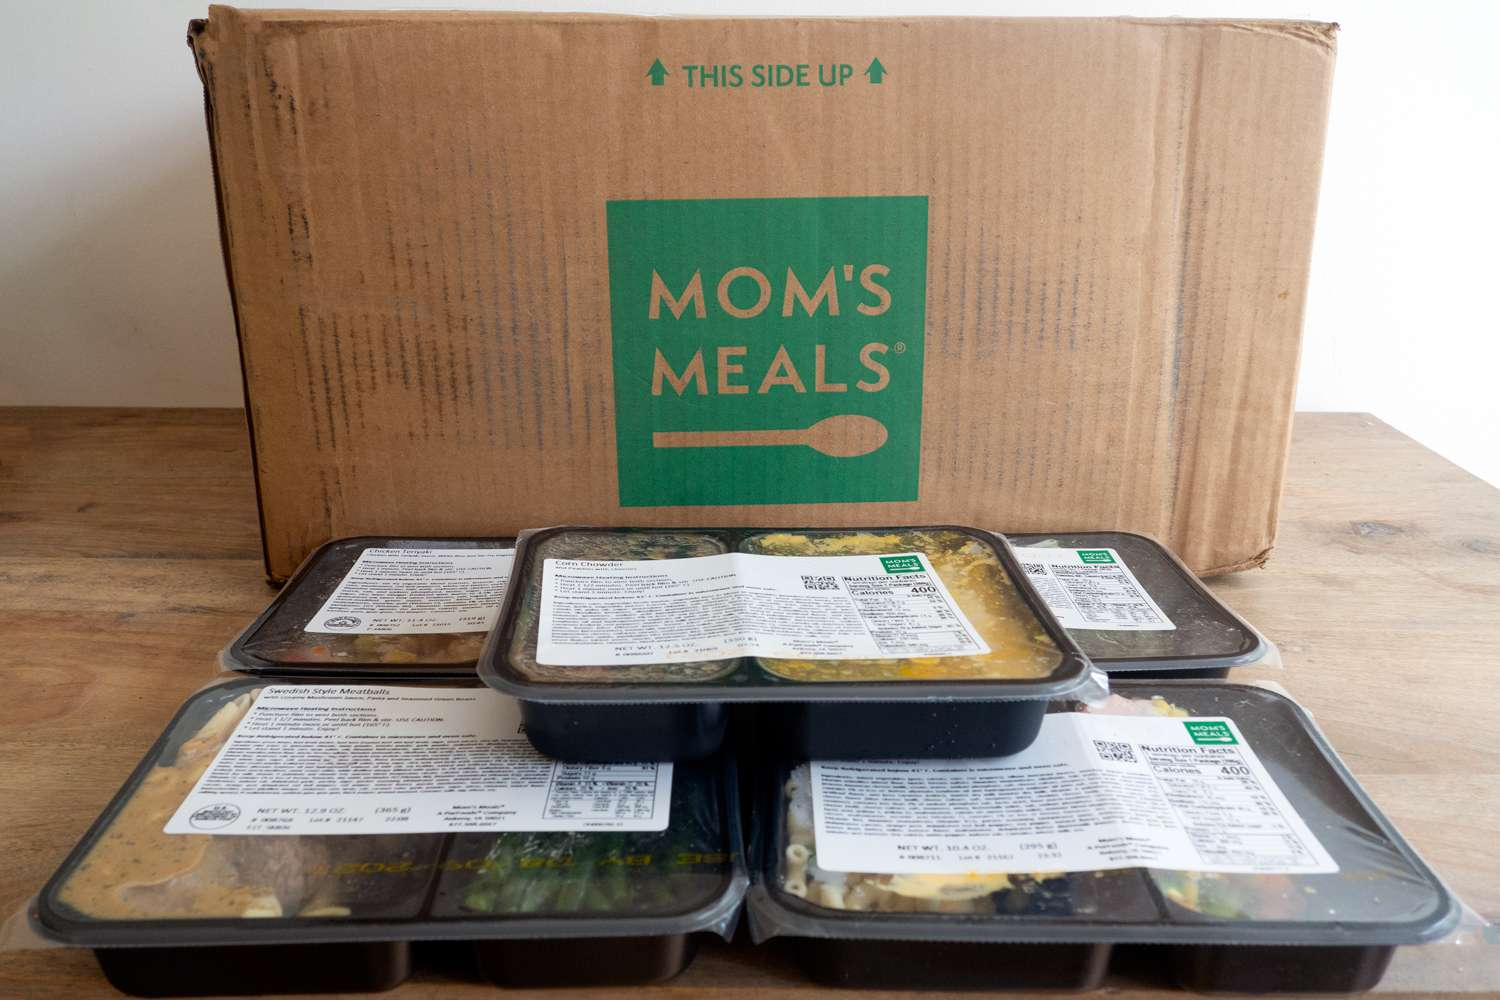 Mom's Meals packaging